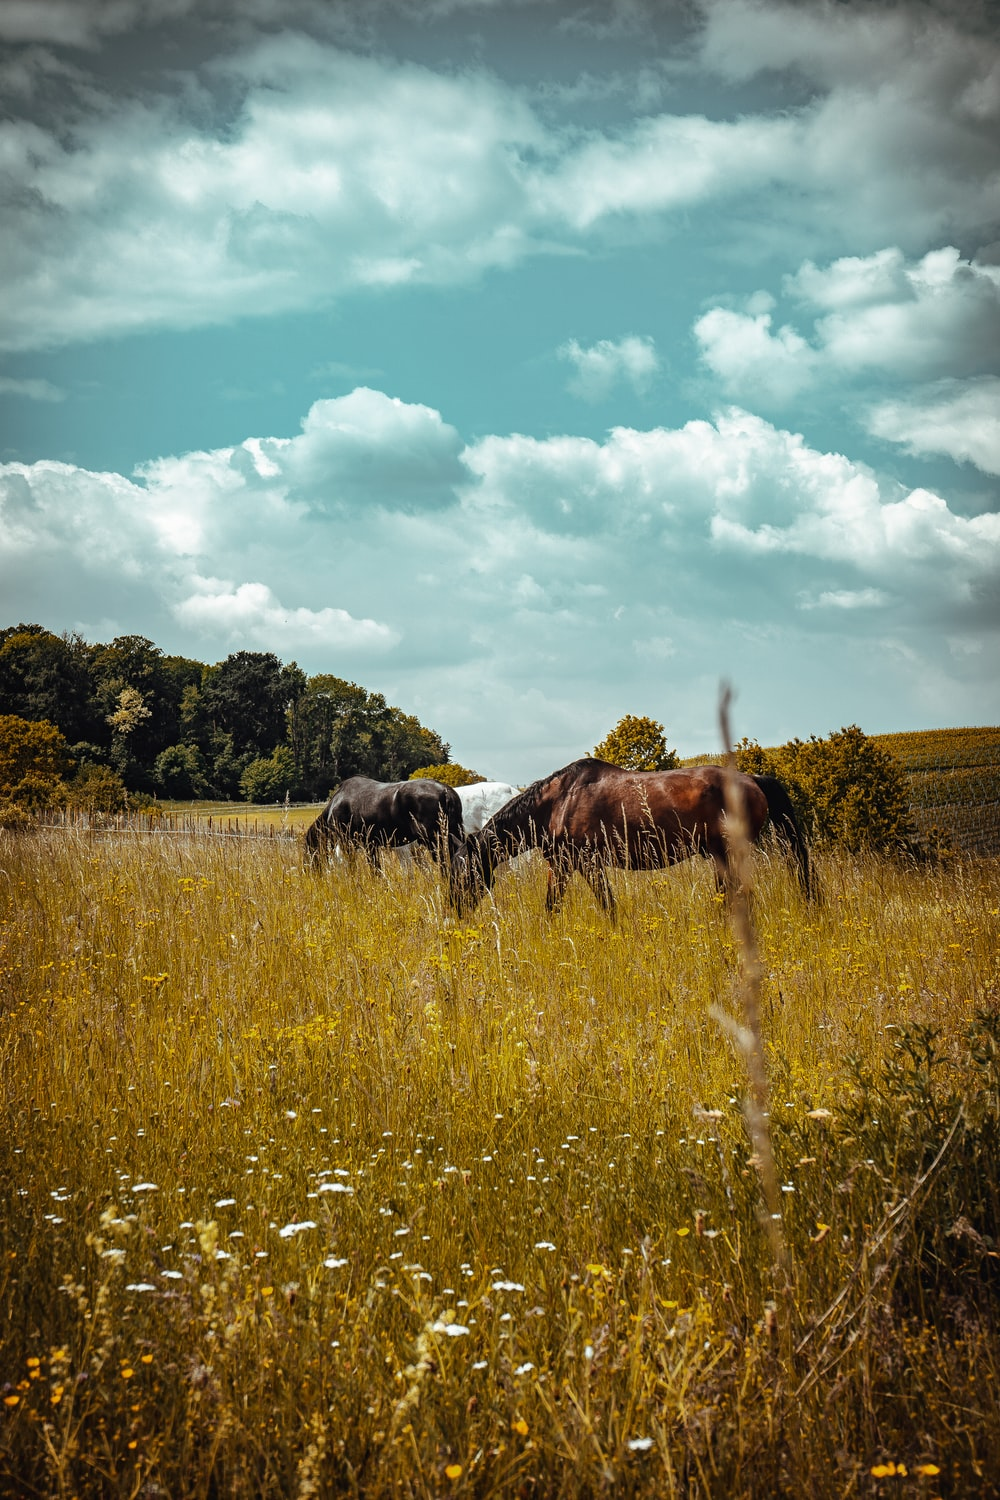 brown and black horses on green grass field under blue and white cloudy sky during daytime